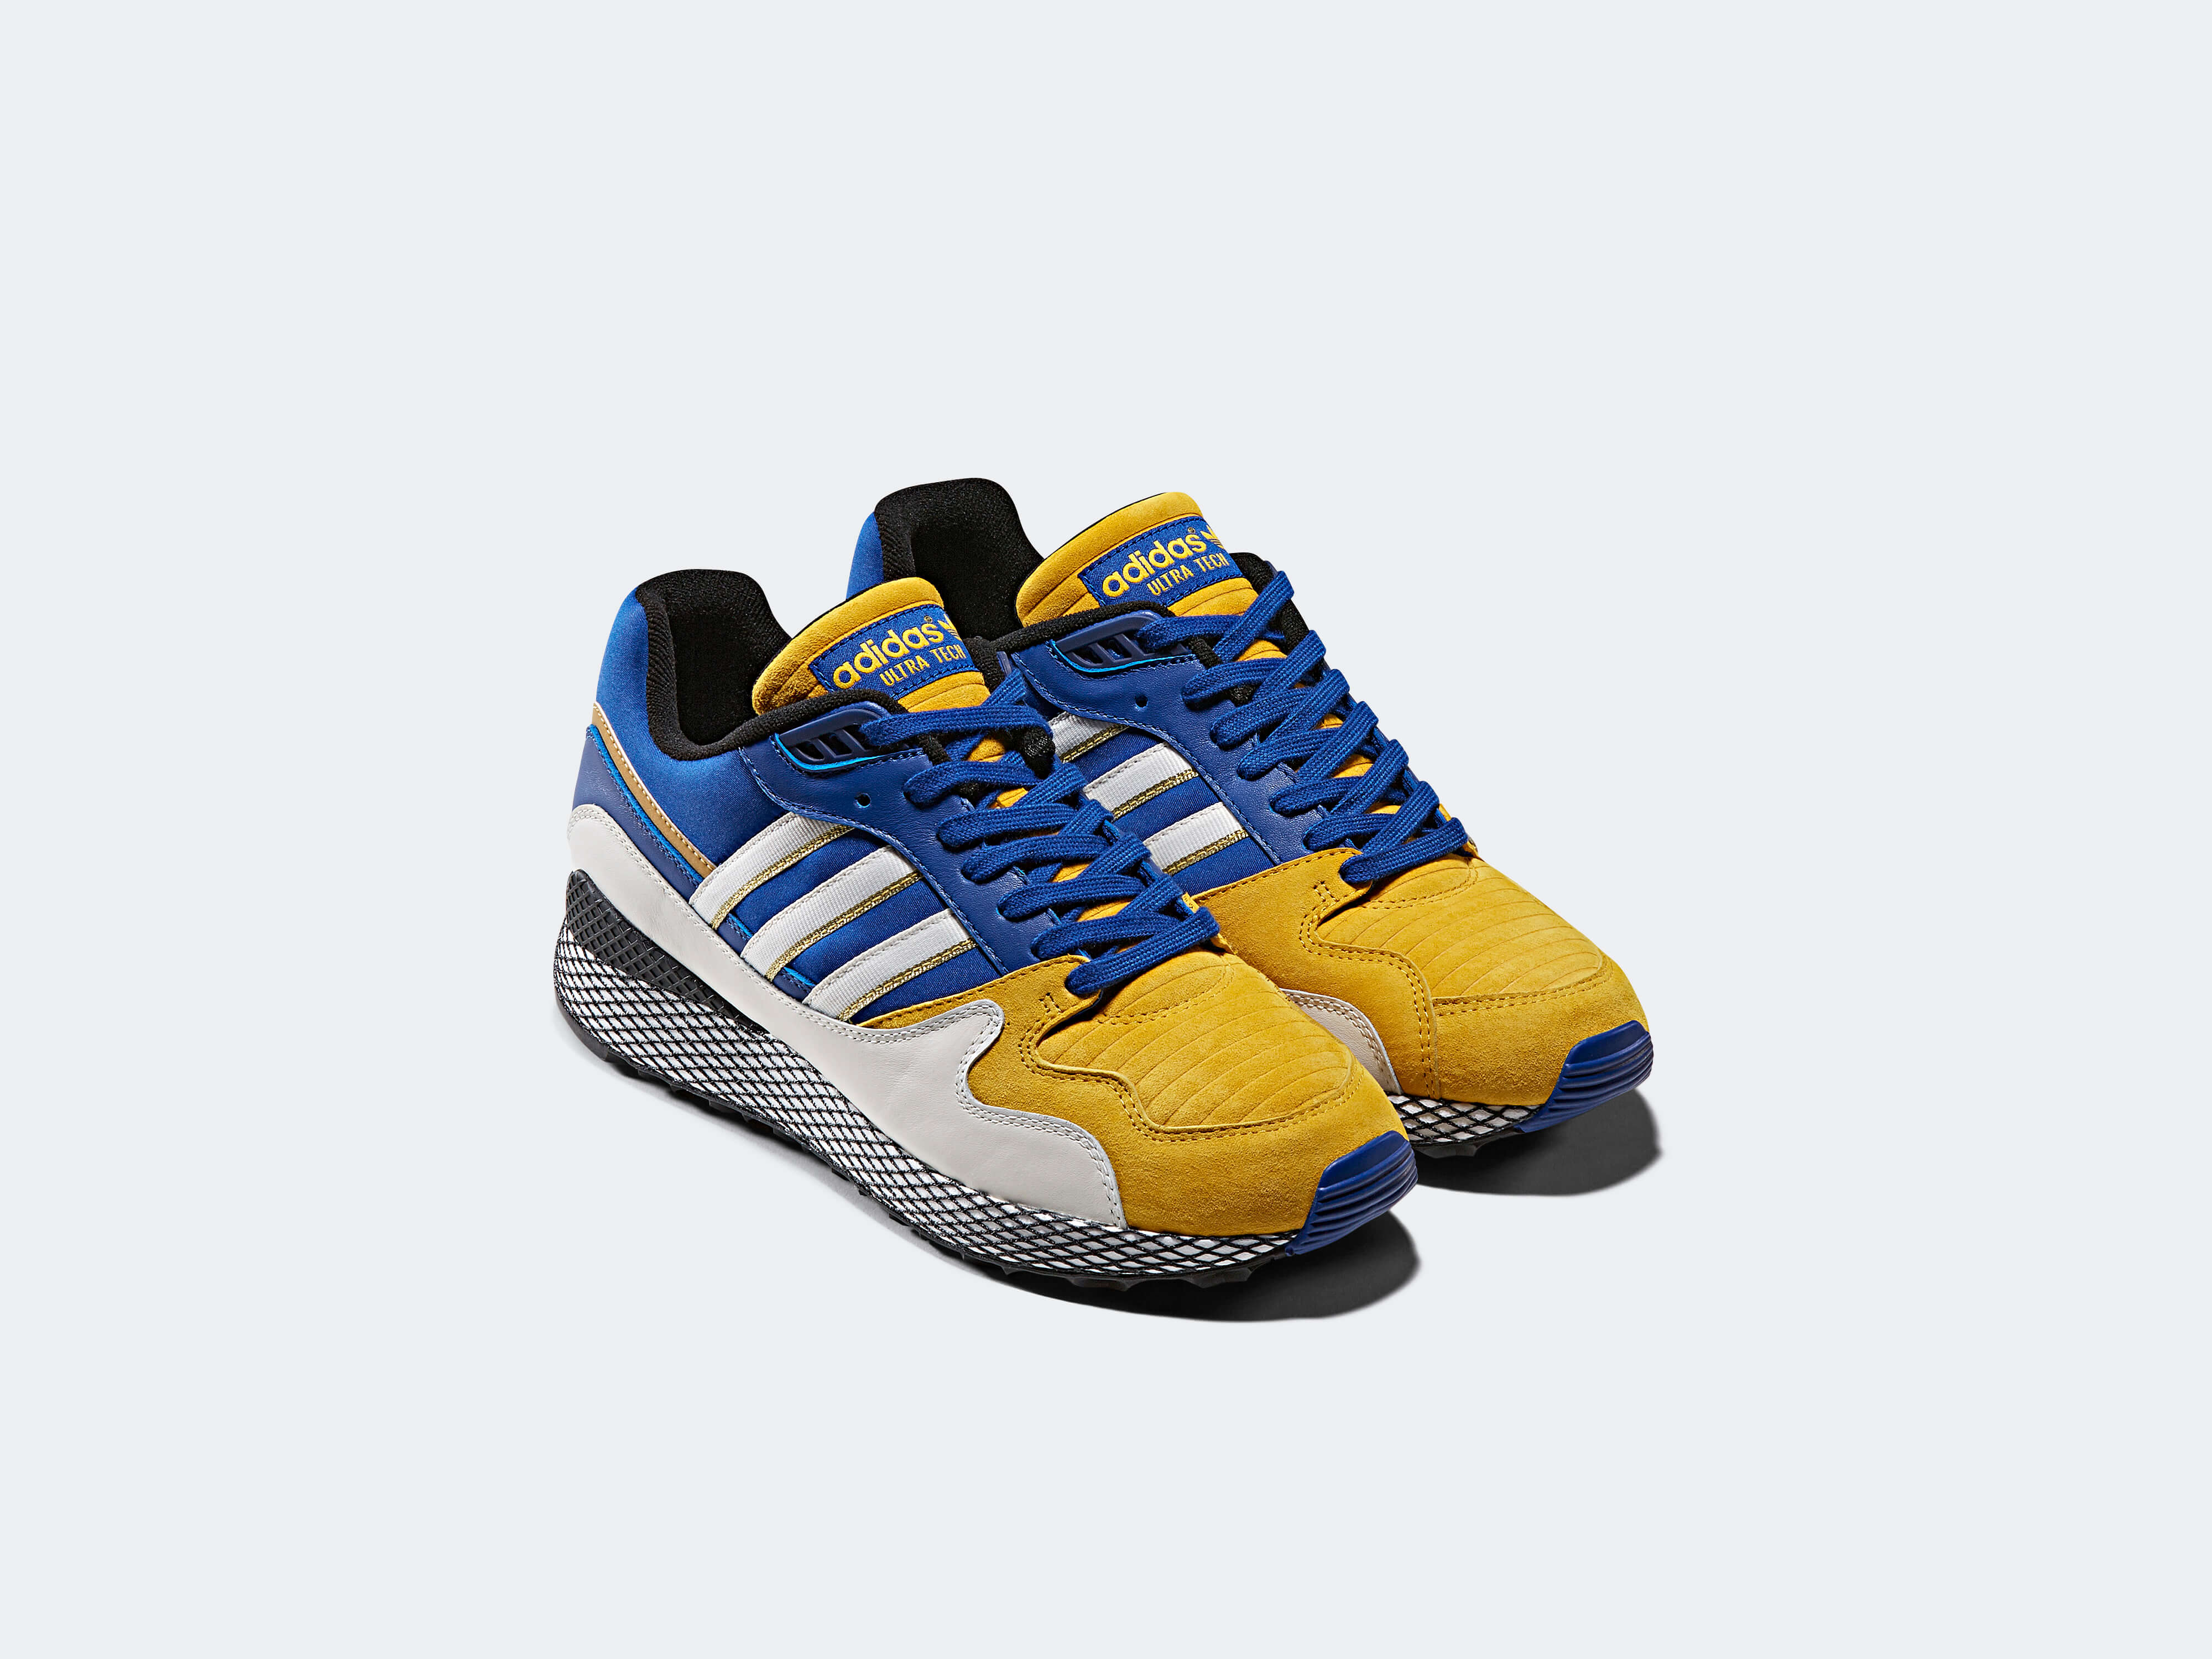 brand new 9a155 5fa07 Vegeta & Majin Buu adidas Originals by Dragon Ball Z to be ...